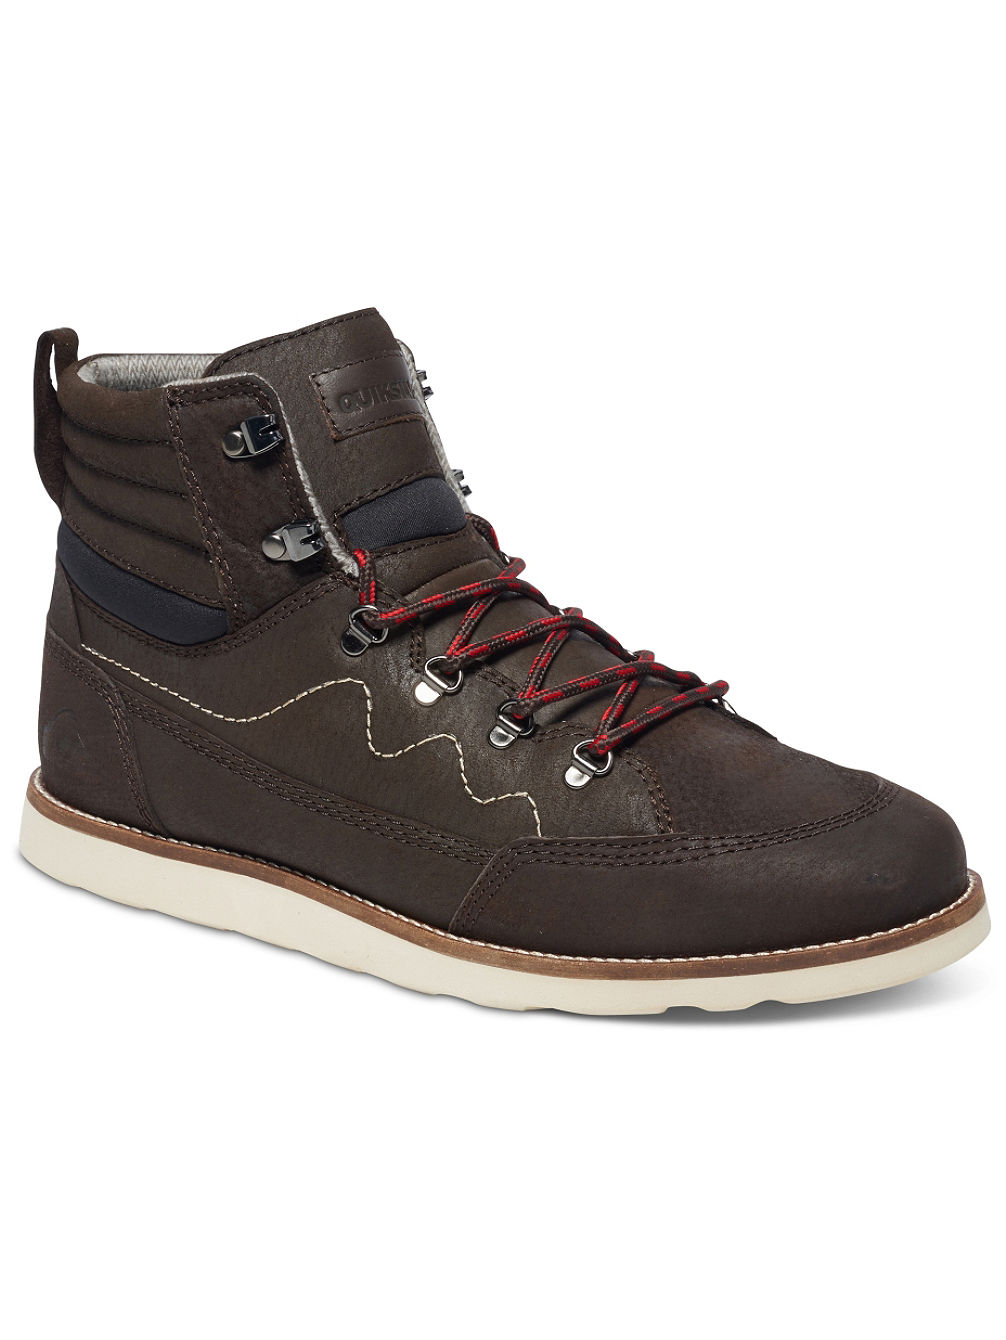 quiksilver-aclas-shoes